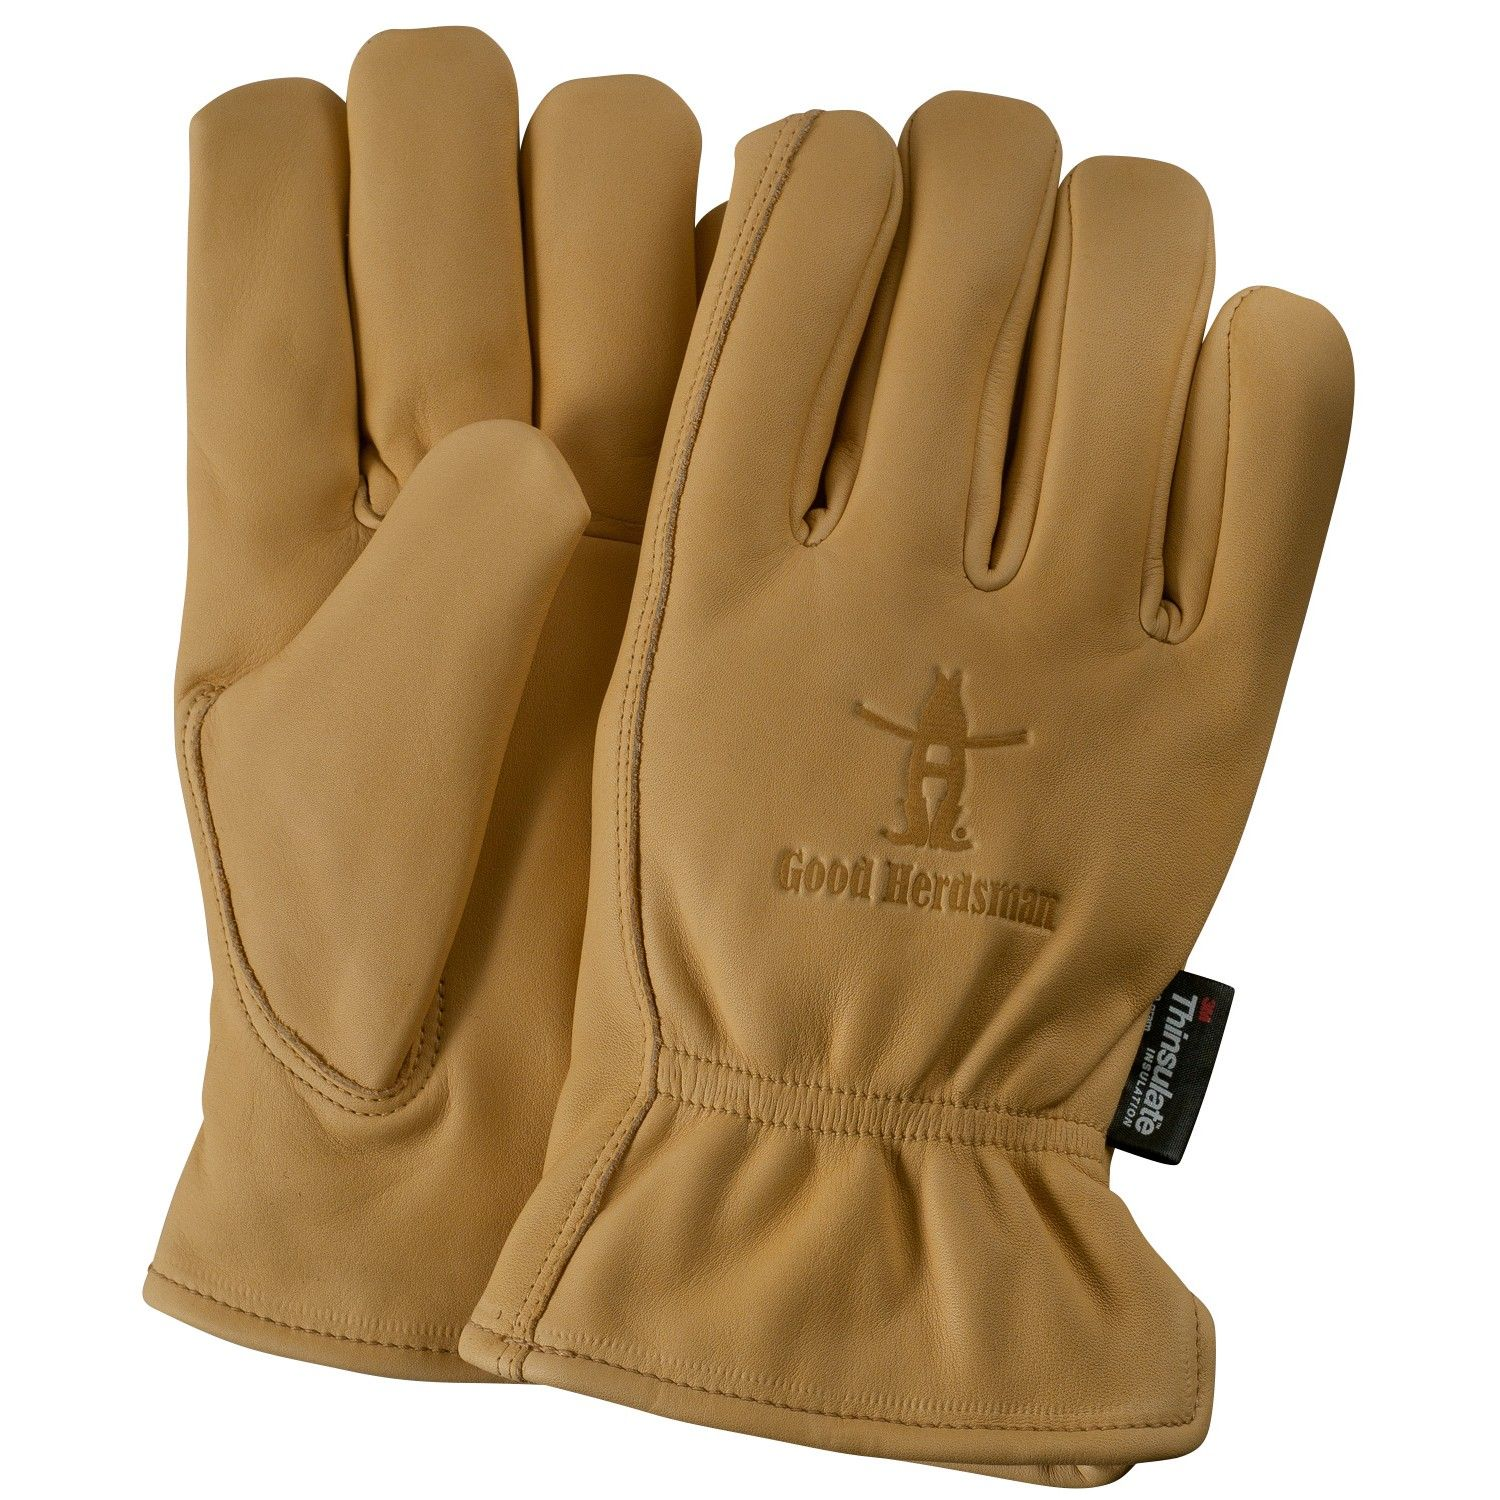 lined premium grain cowhide leather work gloves leather work